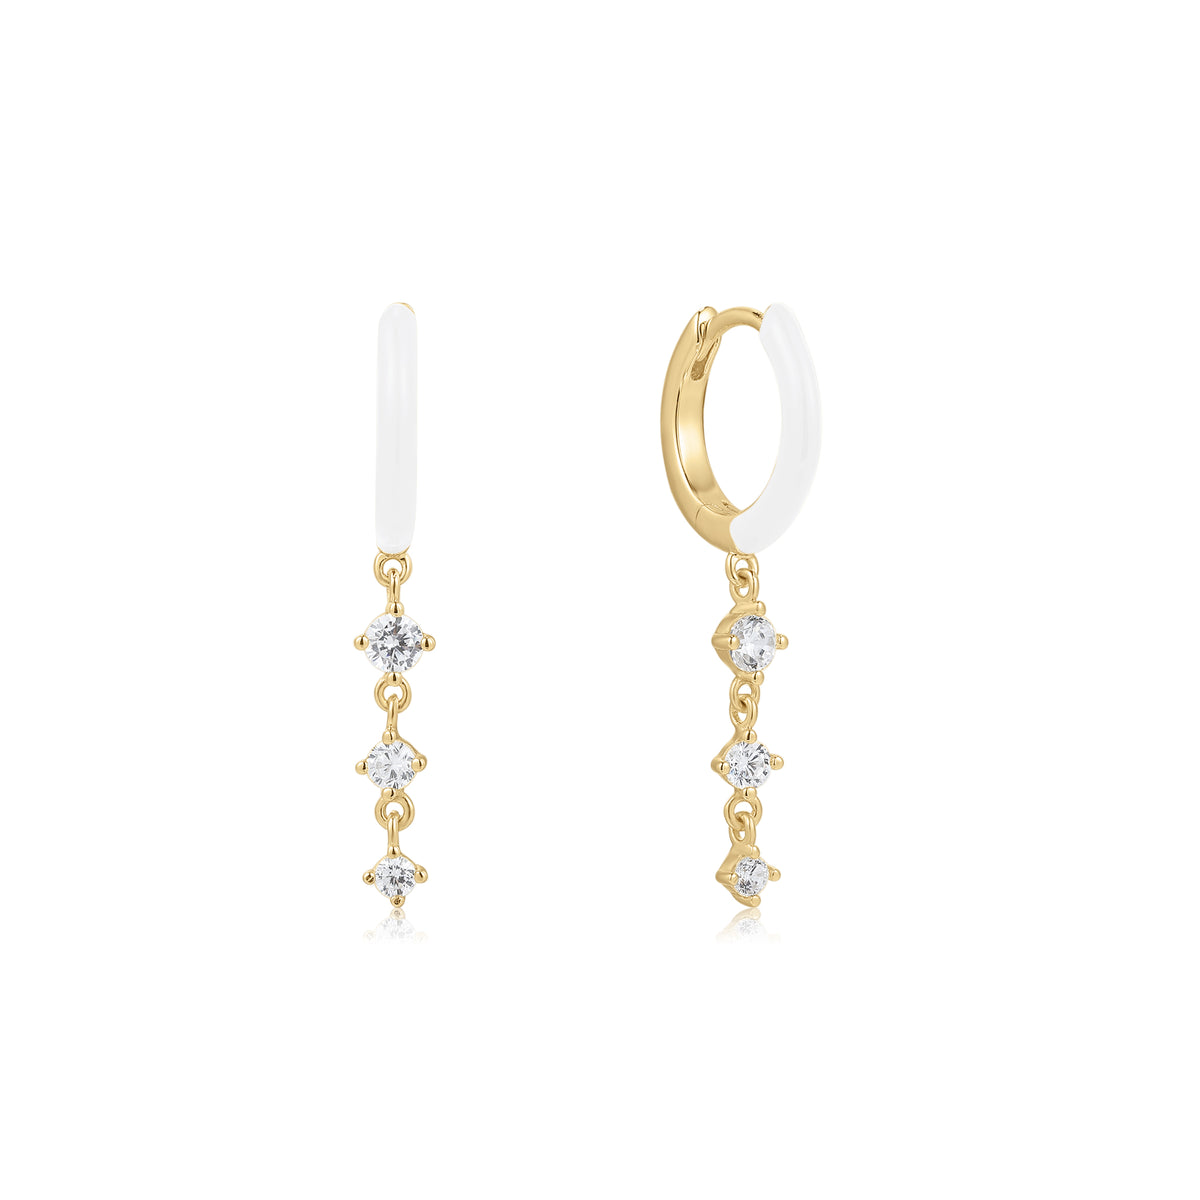 Cardea | Chanterelle Earrings | 925 Silver | White Enamel & White CZ | 14K Gold Plated